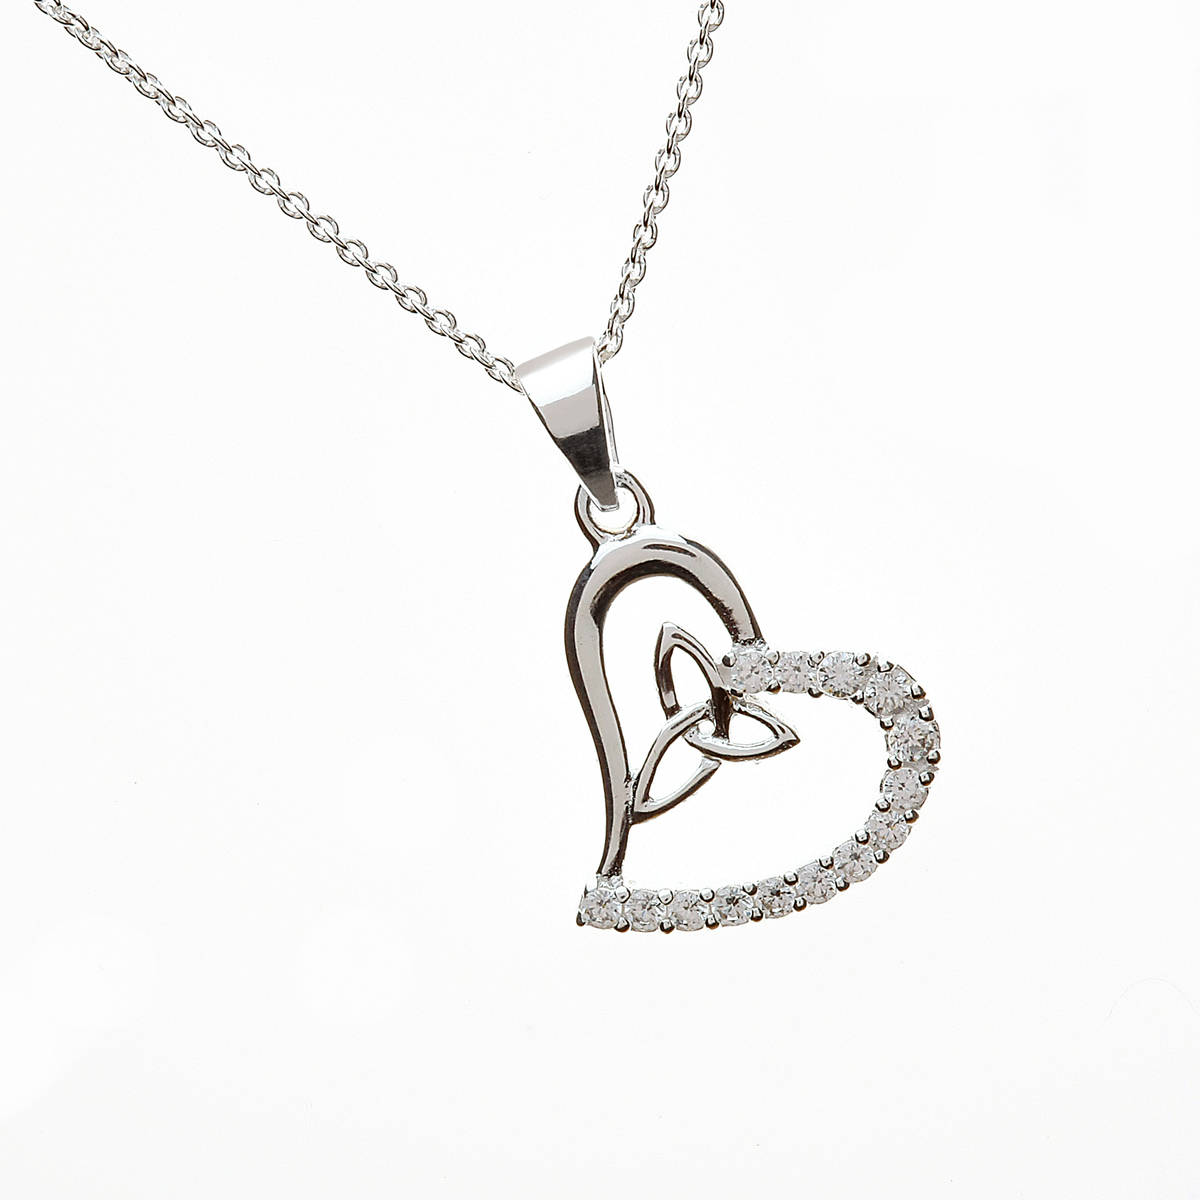 Silver Heart Pendant With Trinity Knot